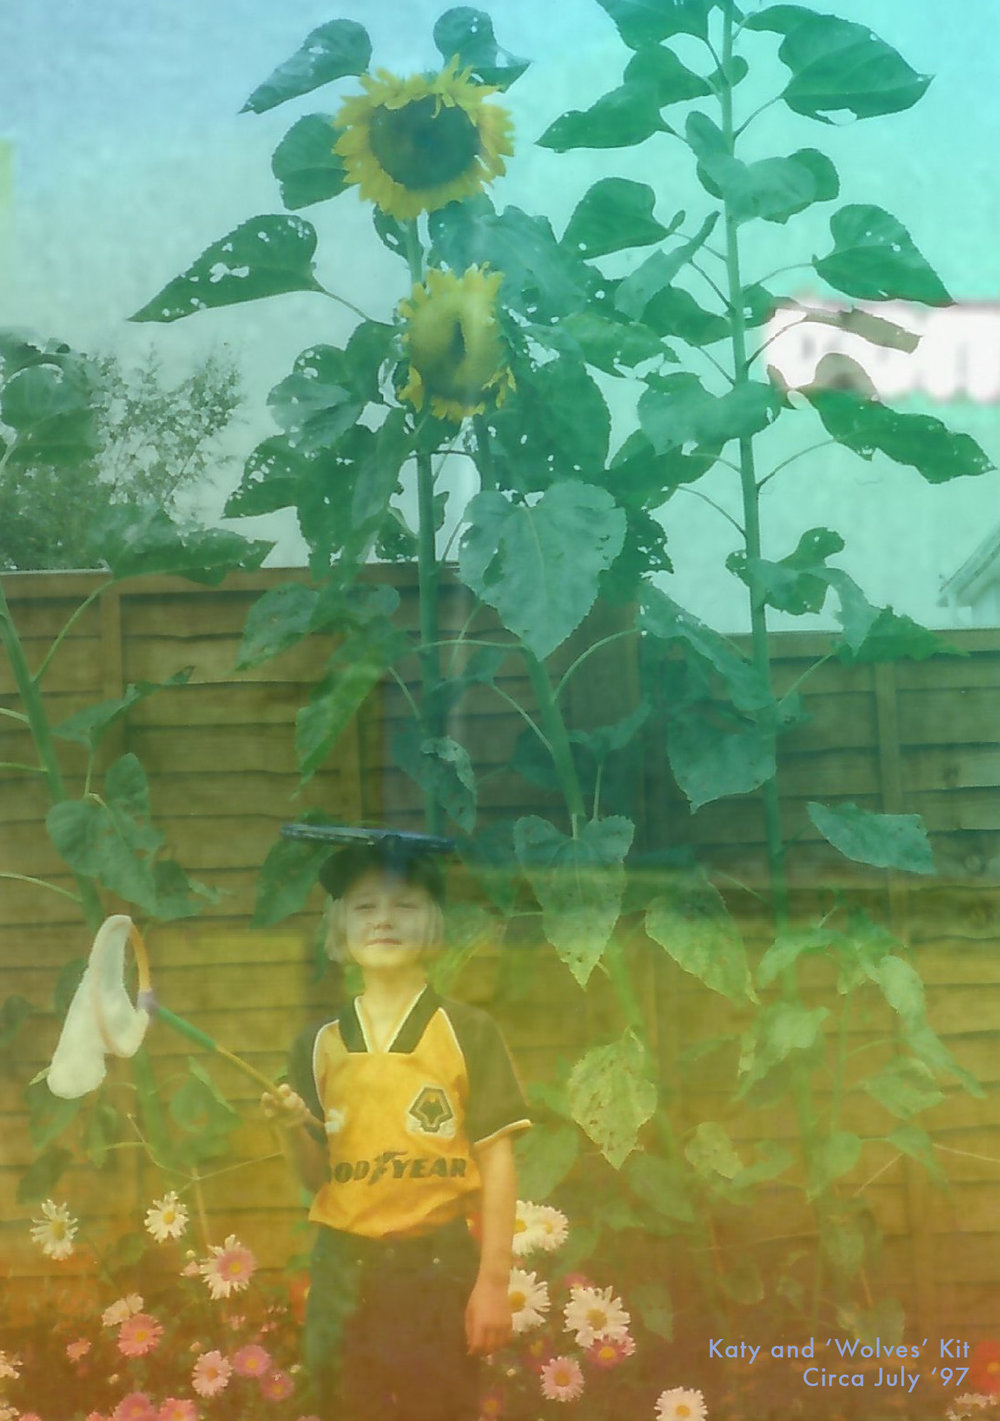 Katie went to every non-school uniform day at secondary school in a Wolves football kit